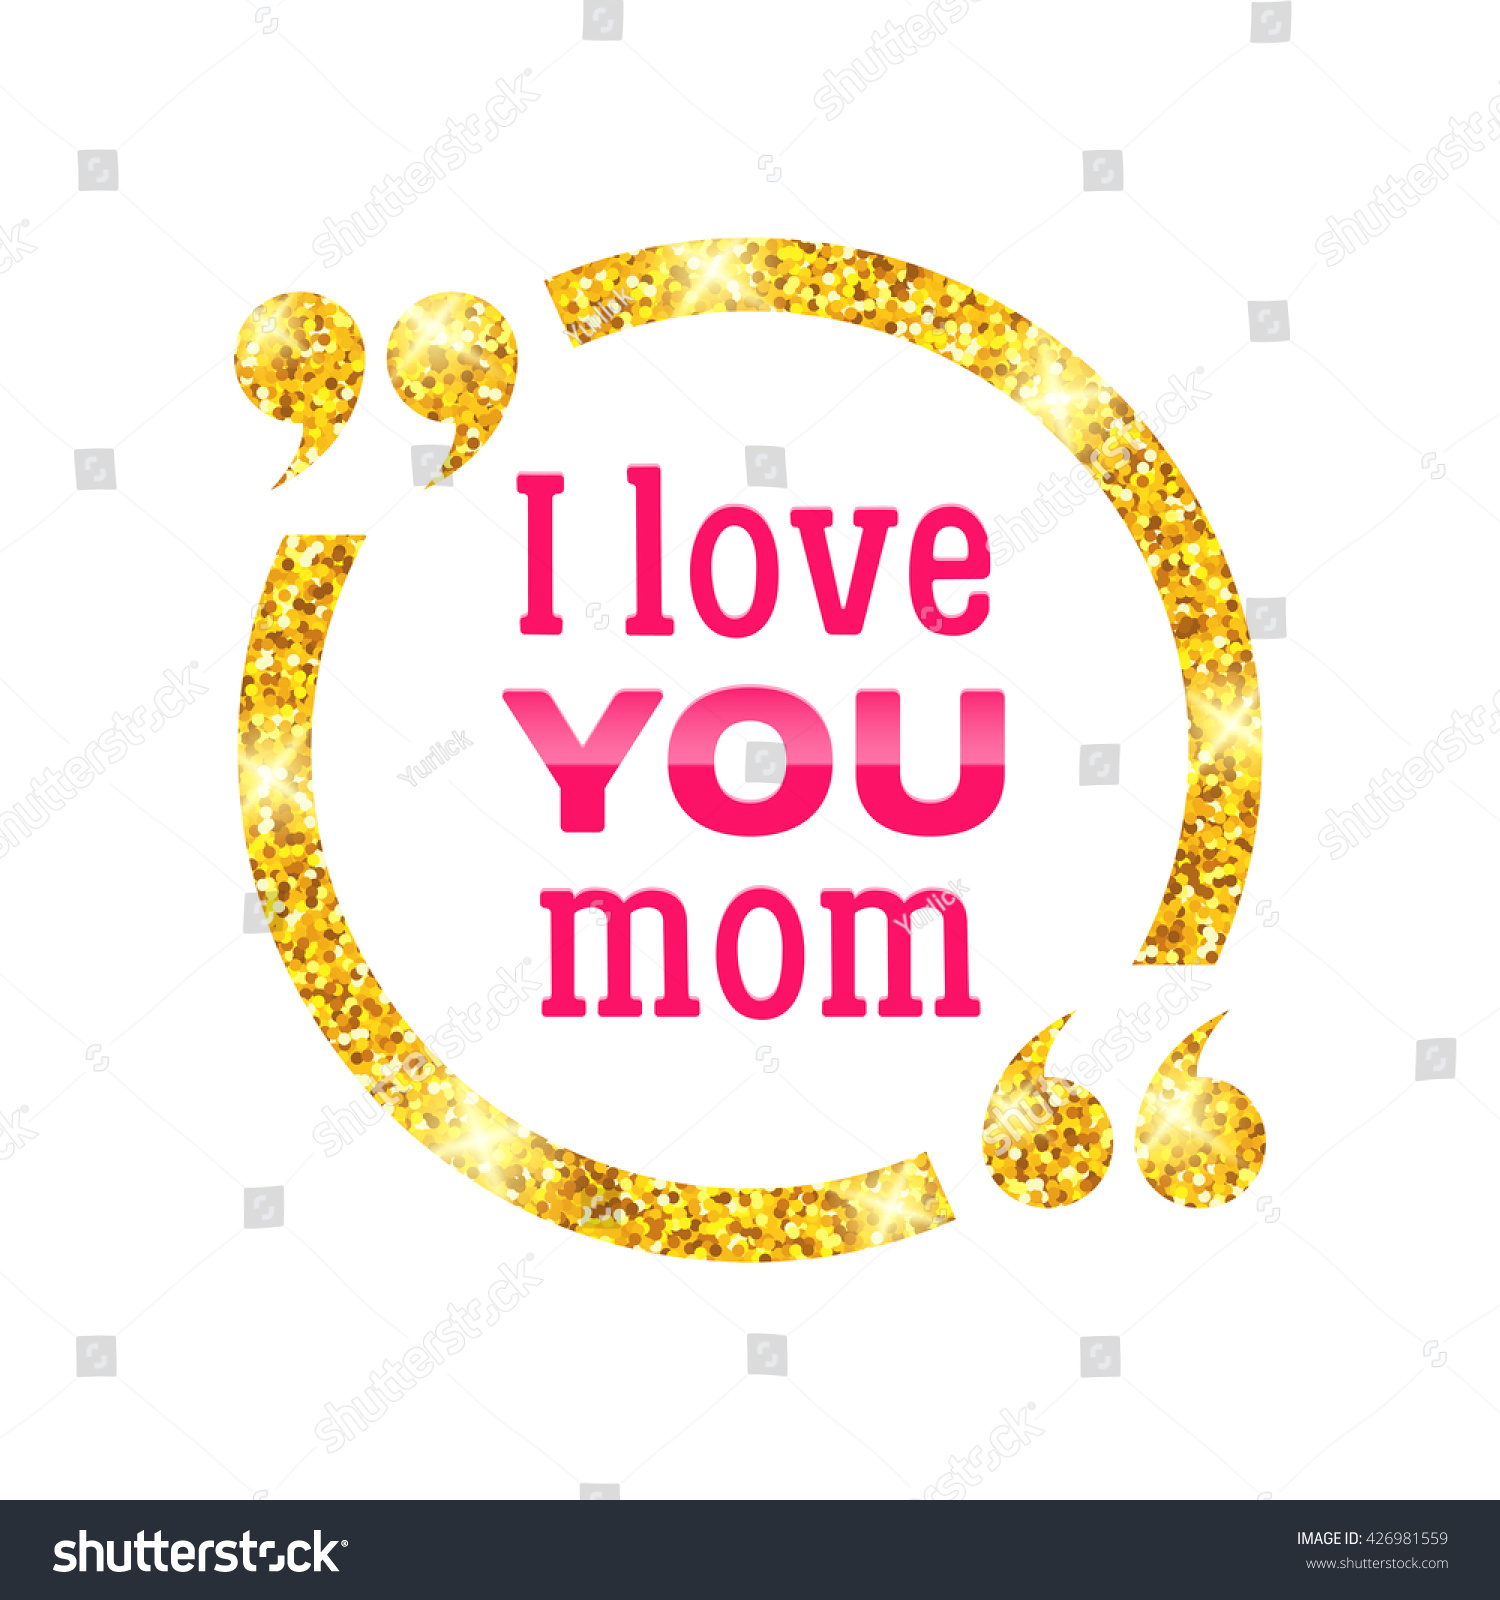 Love You Mom Golden Circle Quote Stock Illustration 426981559